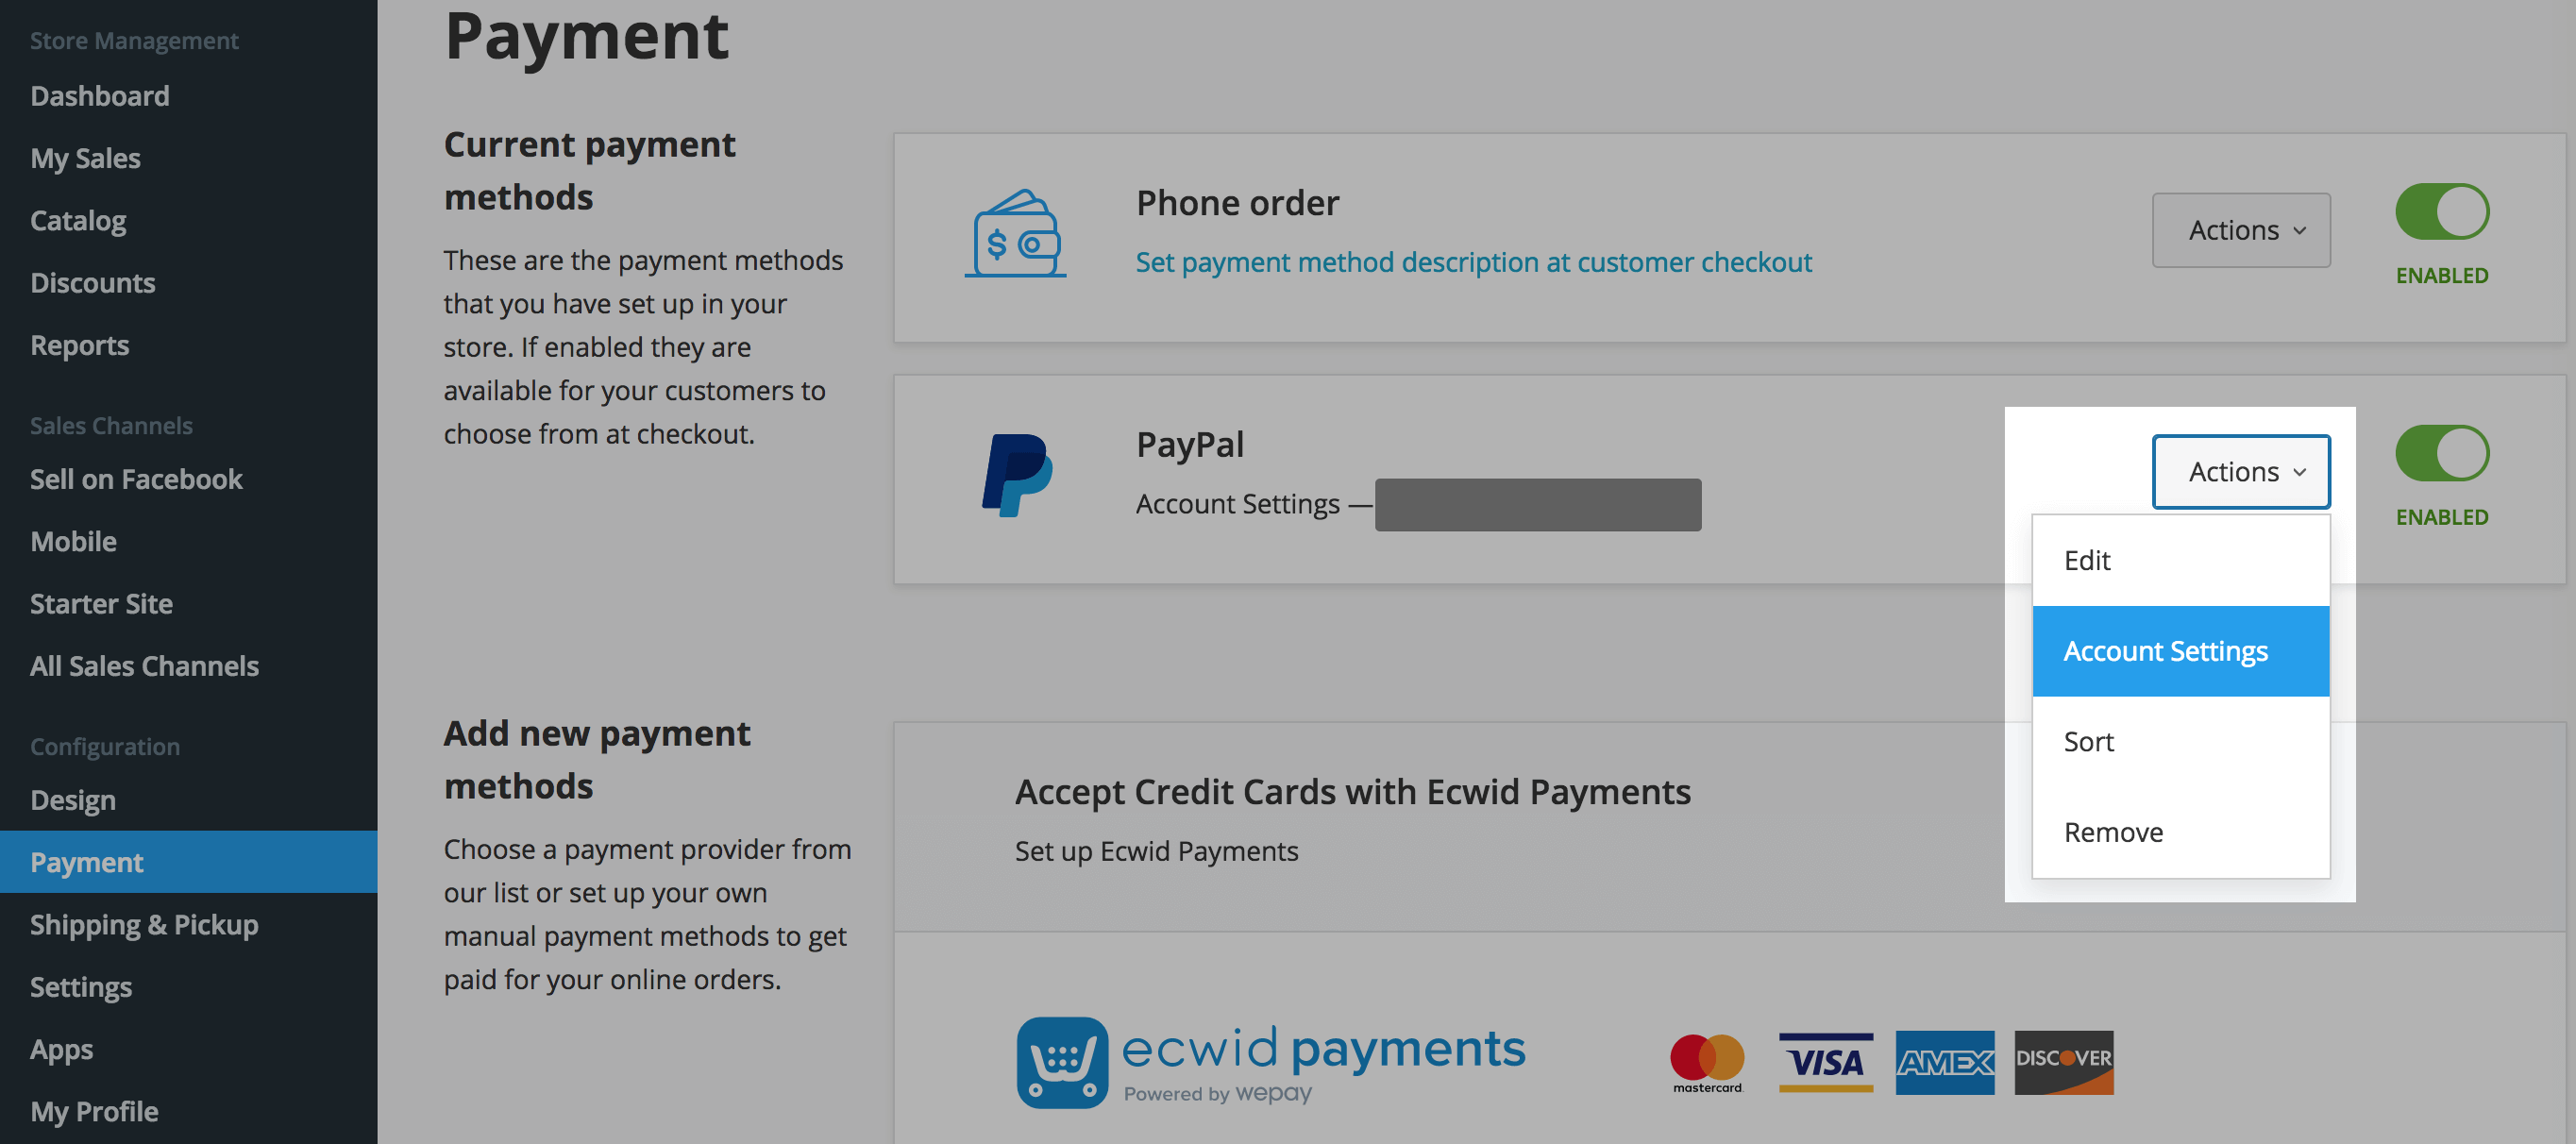 Paypal account settings in Ecwid Control Panel